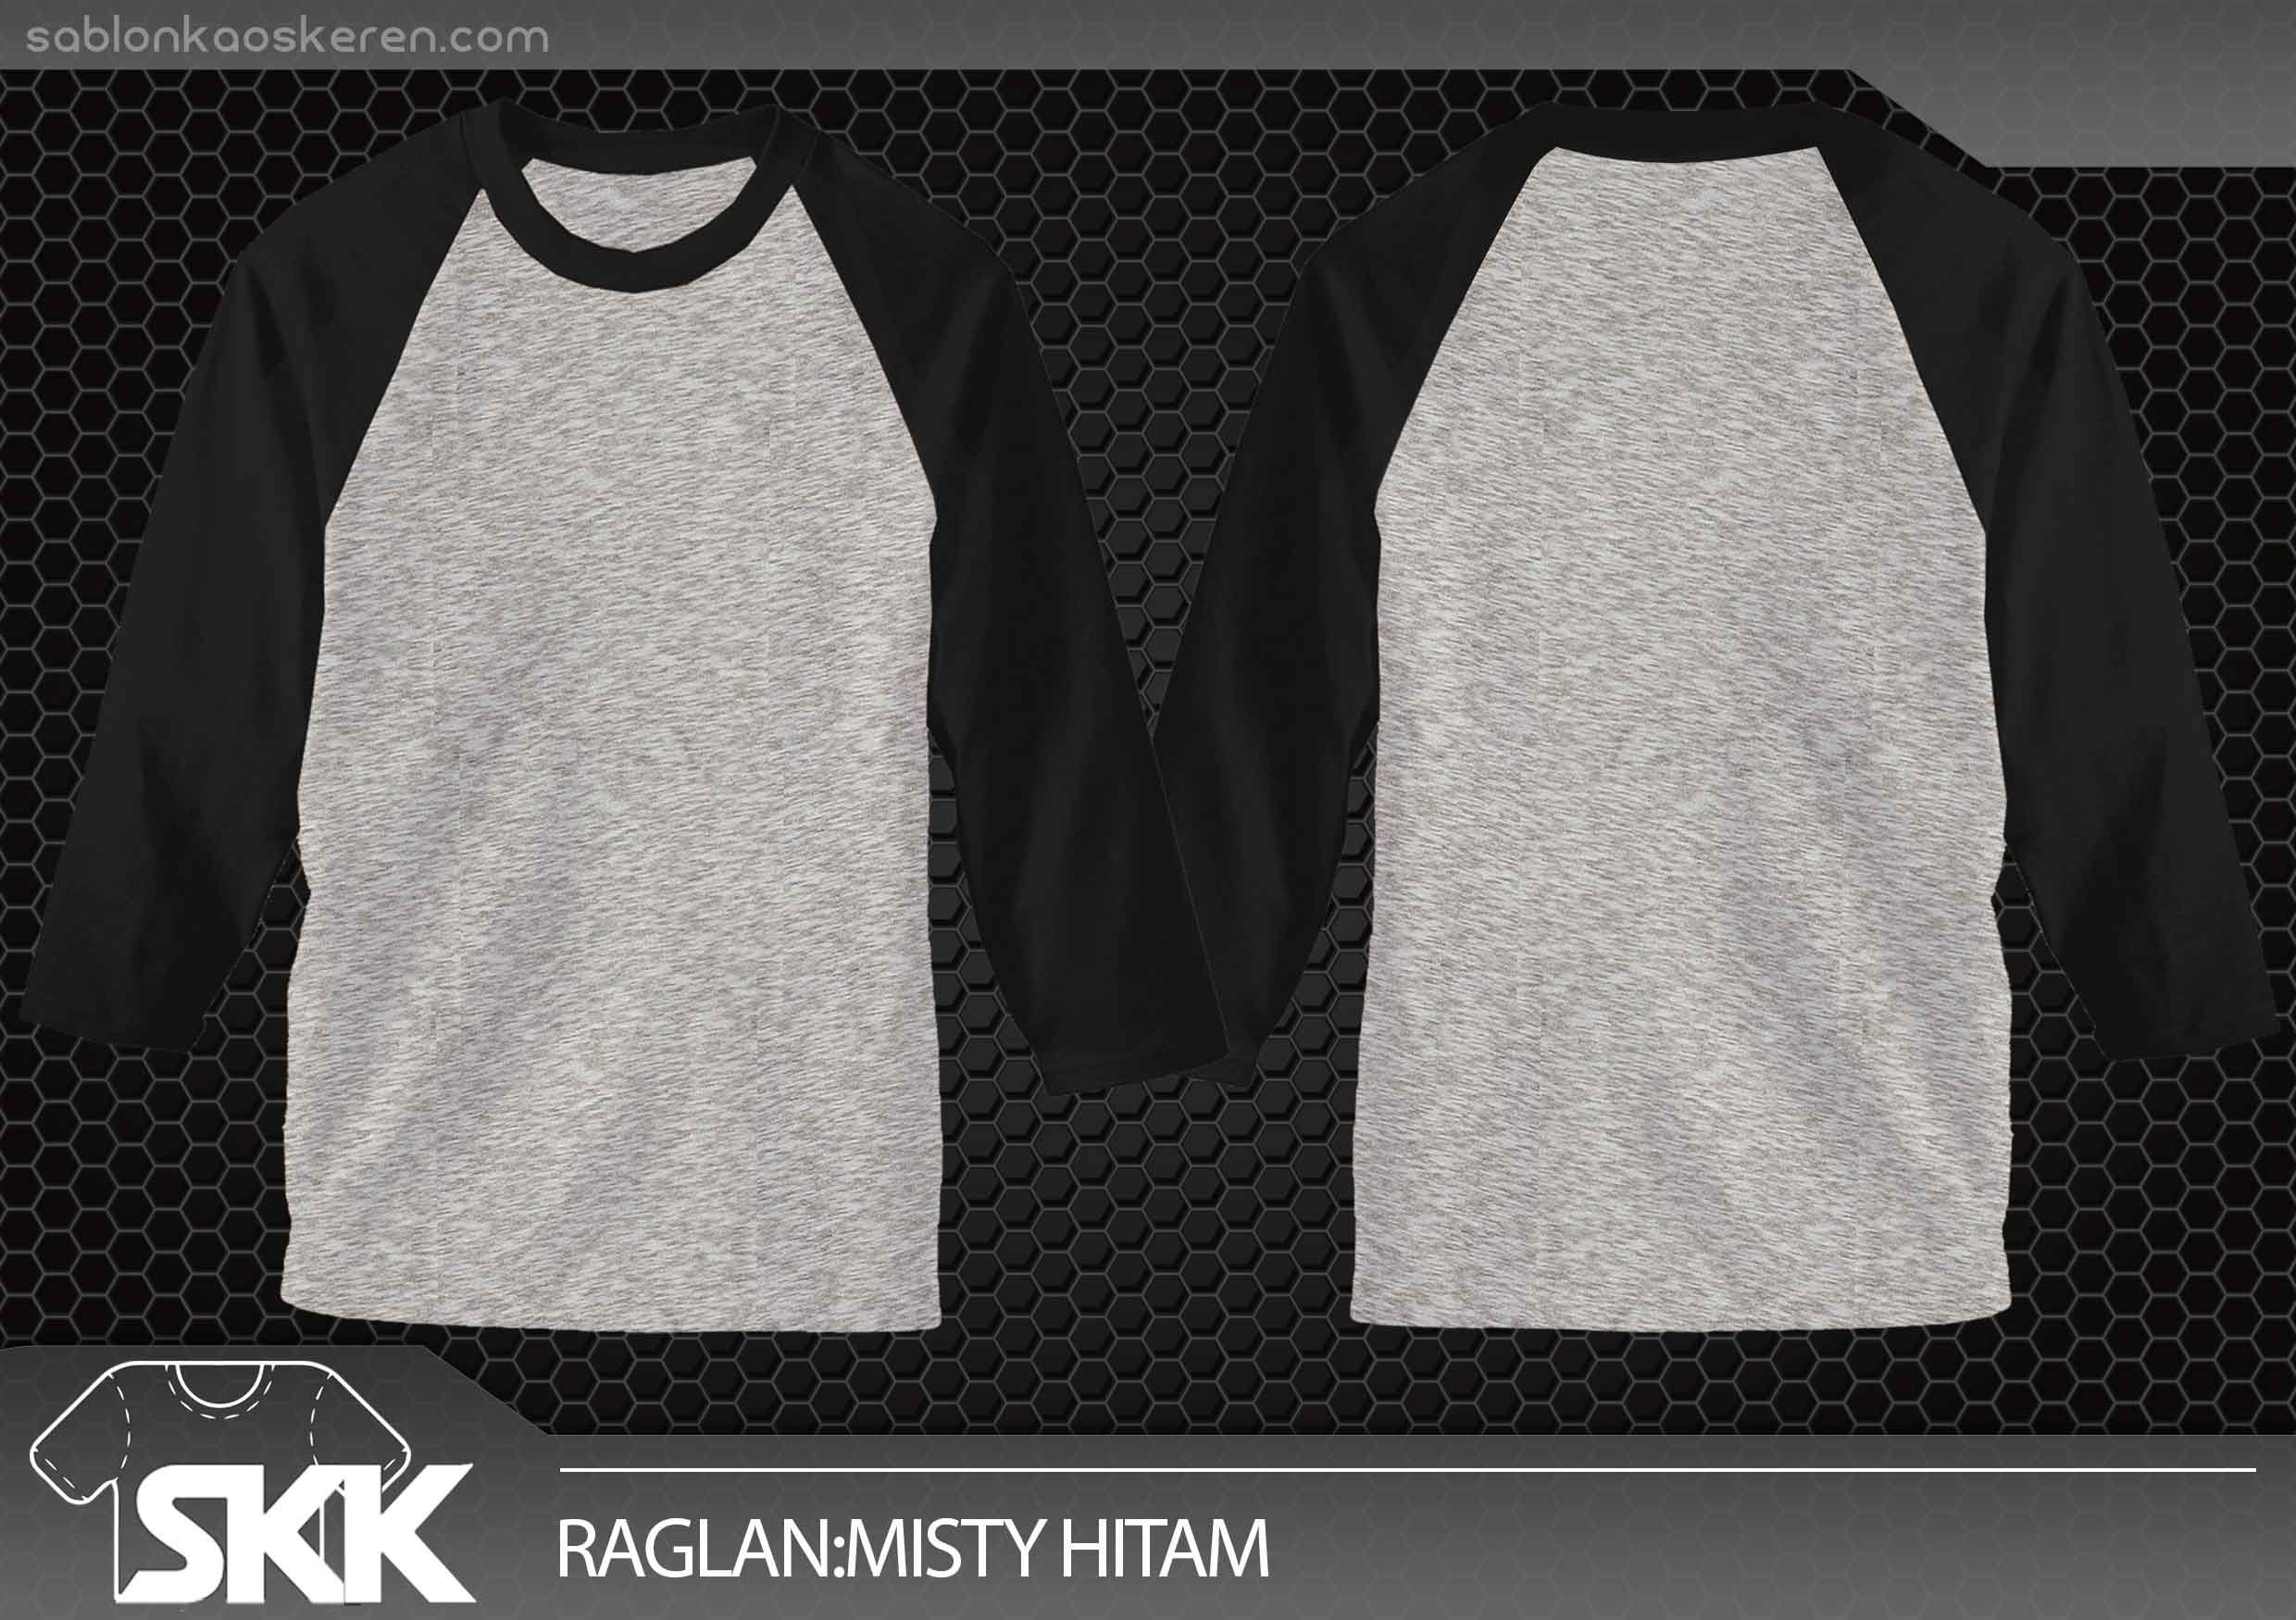 Raglan Misty Hitam Sablon Kaos Keren Mock Up Pinterest Home Tendencies Tshirt First Class M Projects To Try